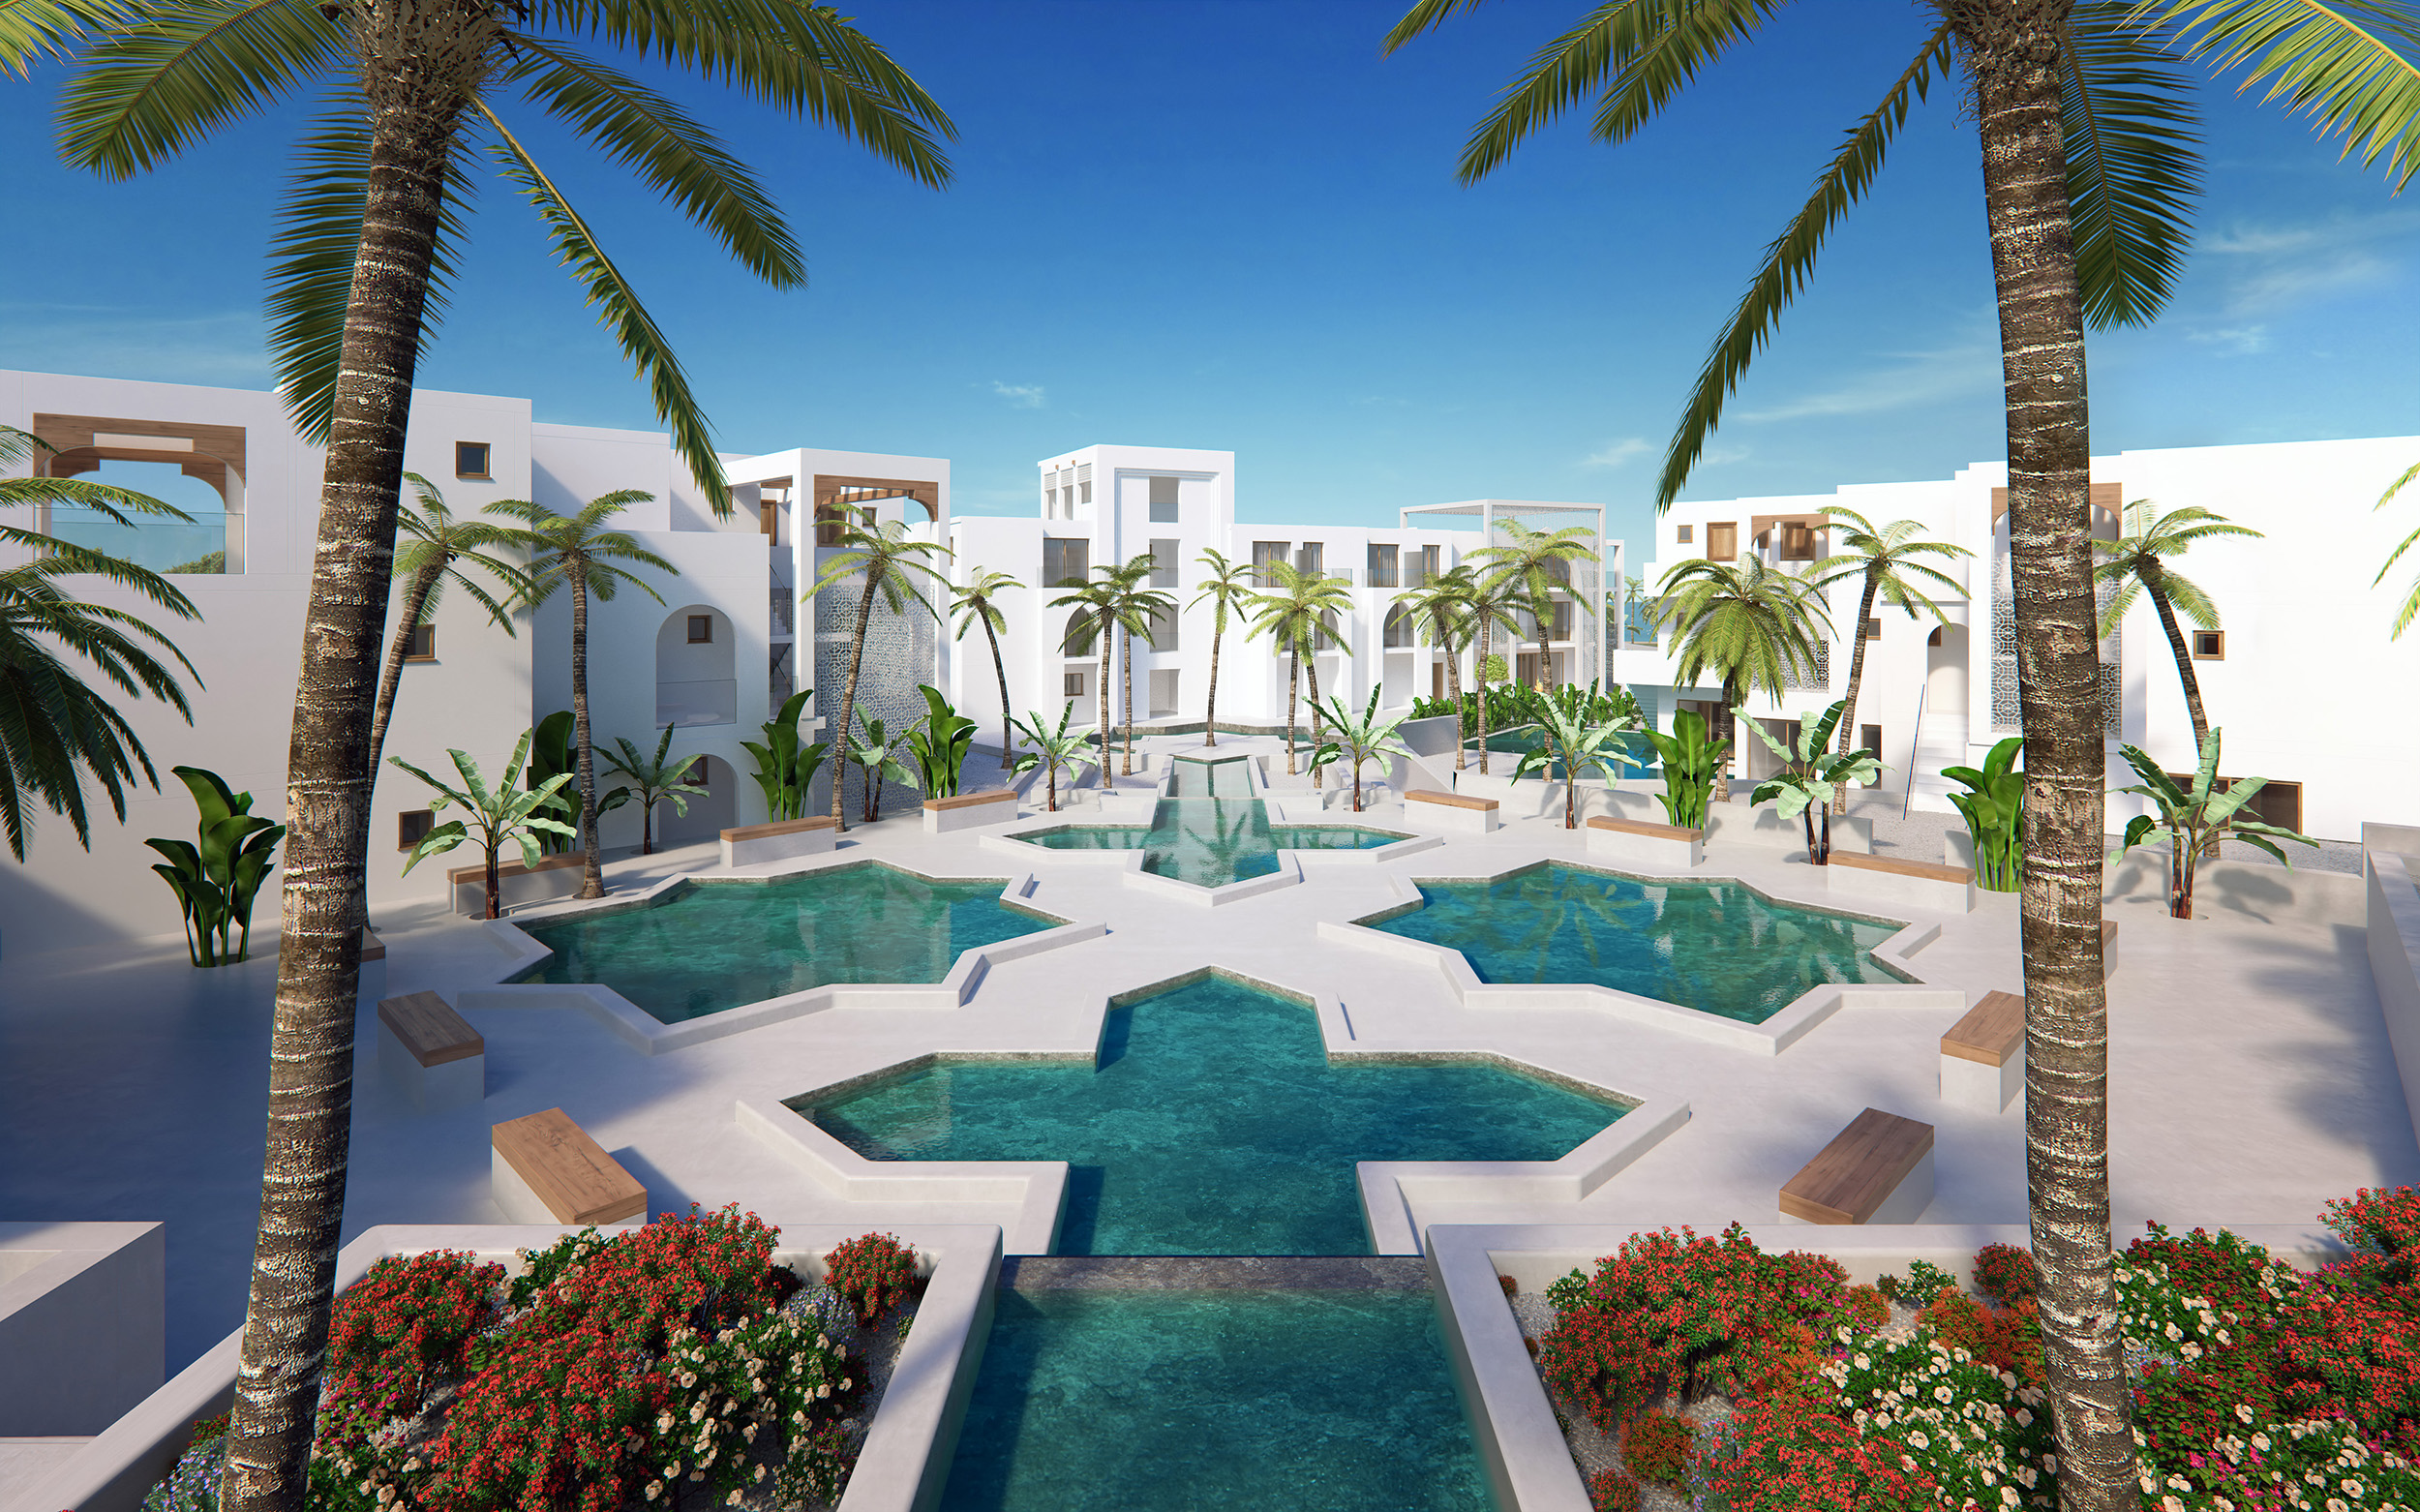 A Spicy Note In Cretan Hospitality: Pepper Sea Club Hotel Opens Its Doors In May 2020